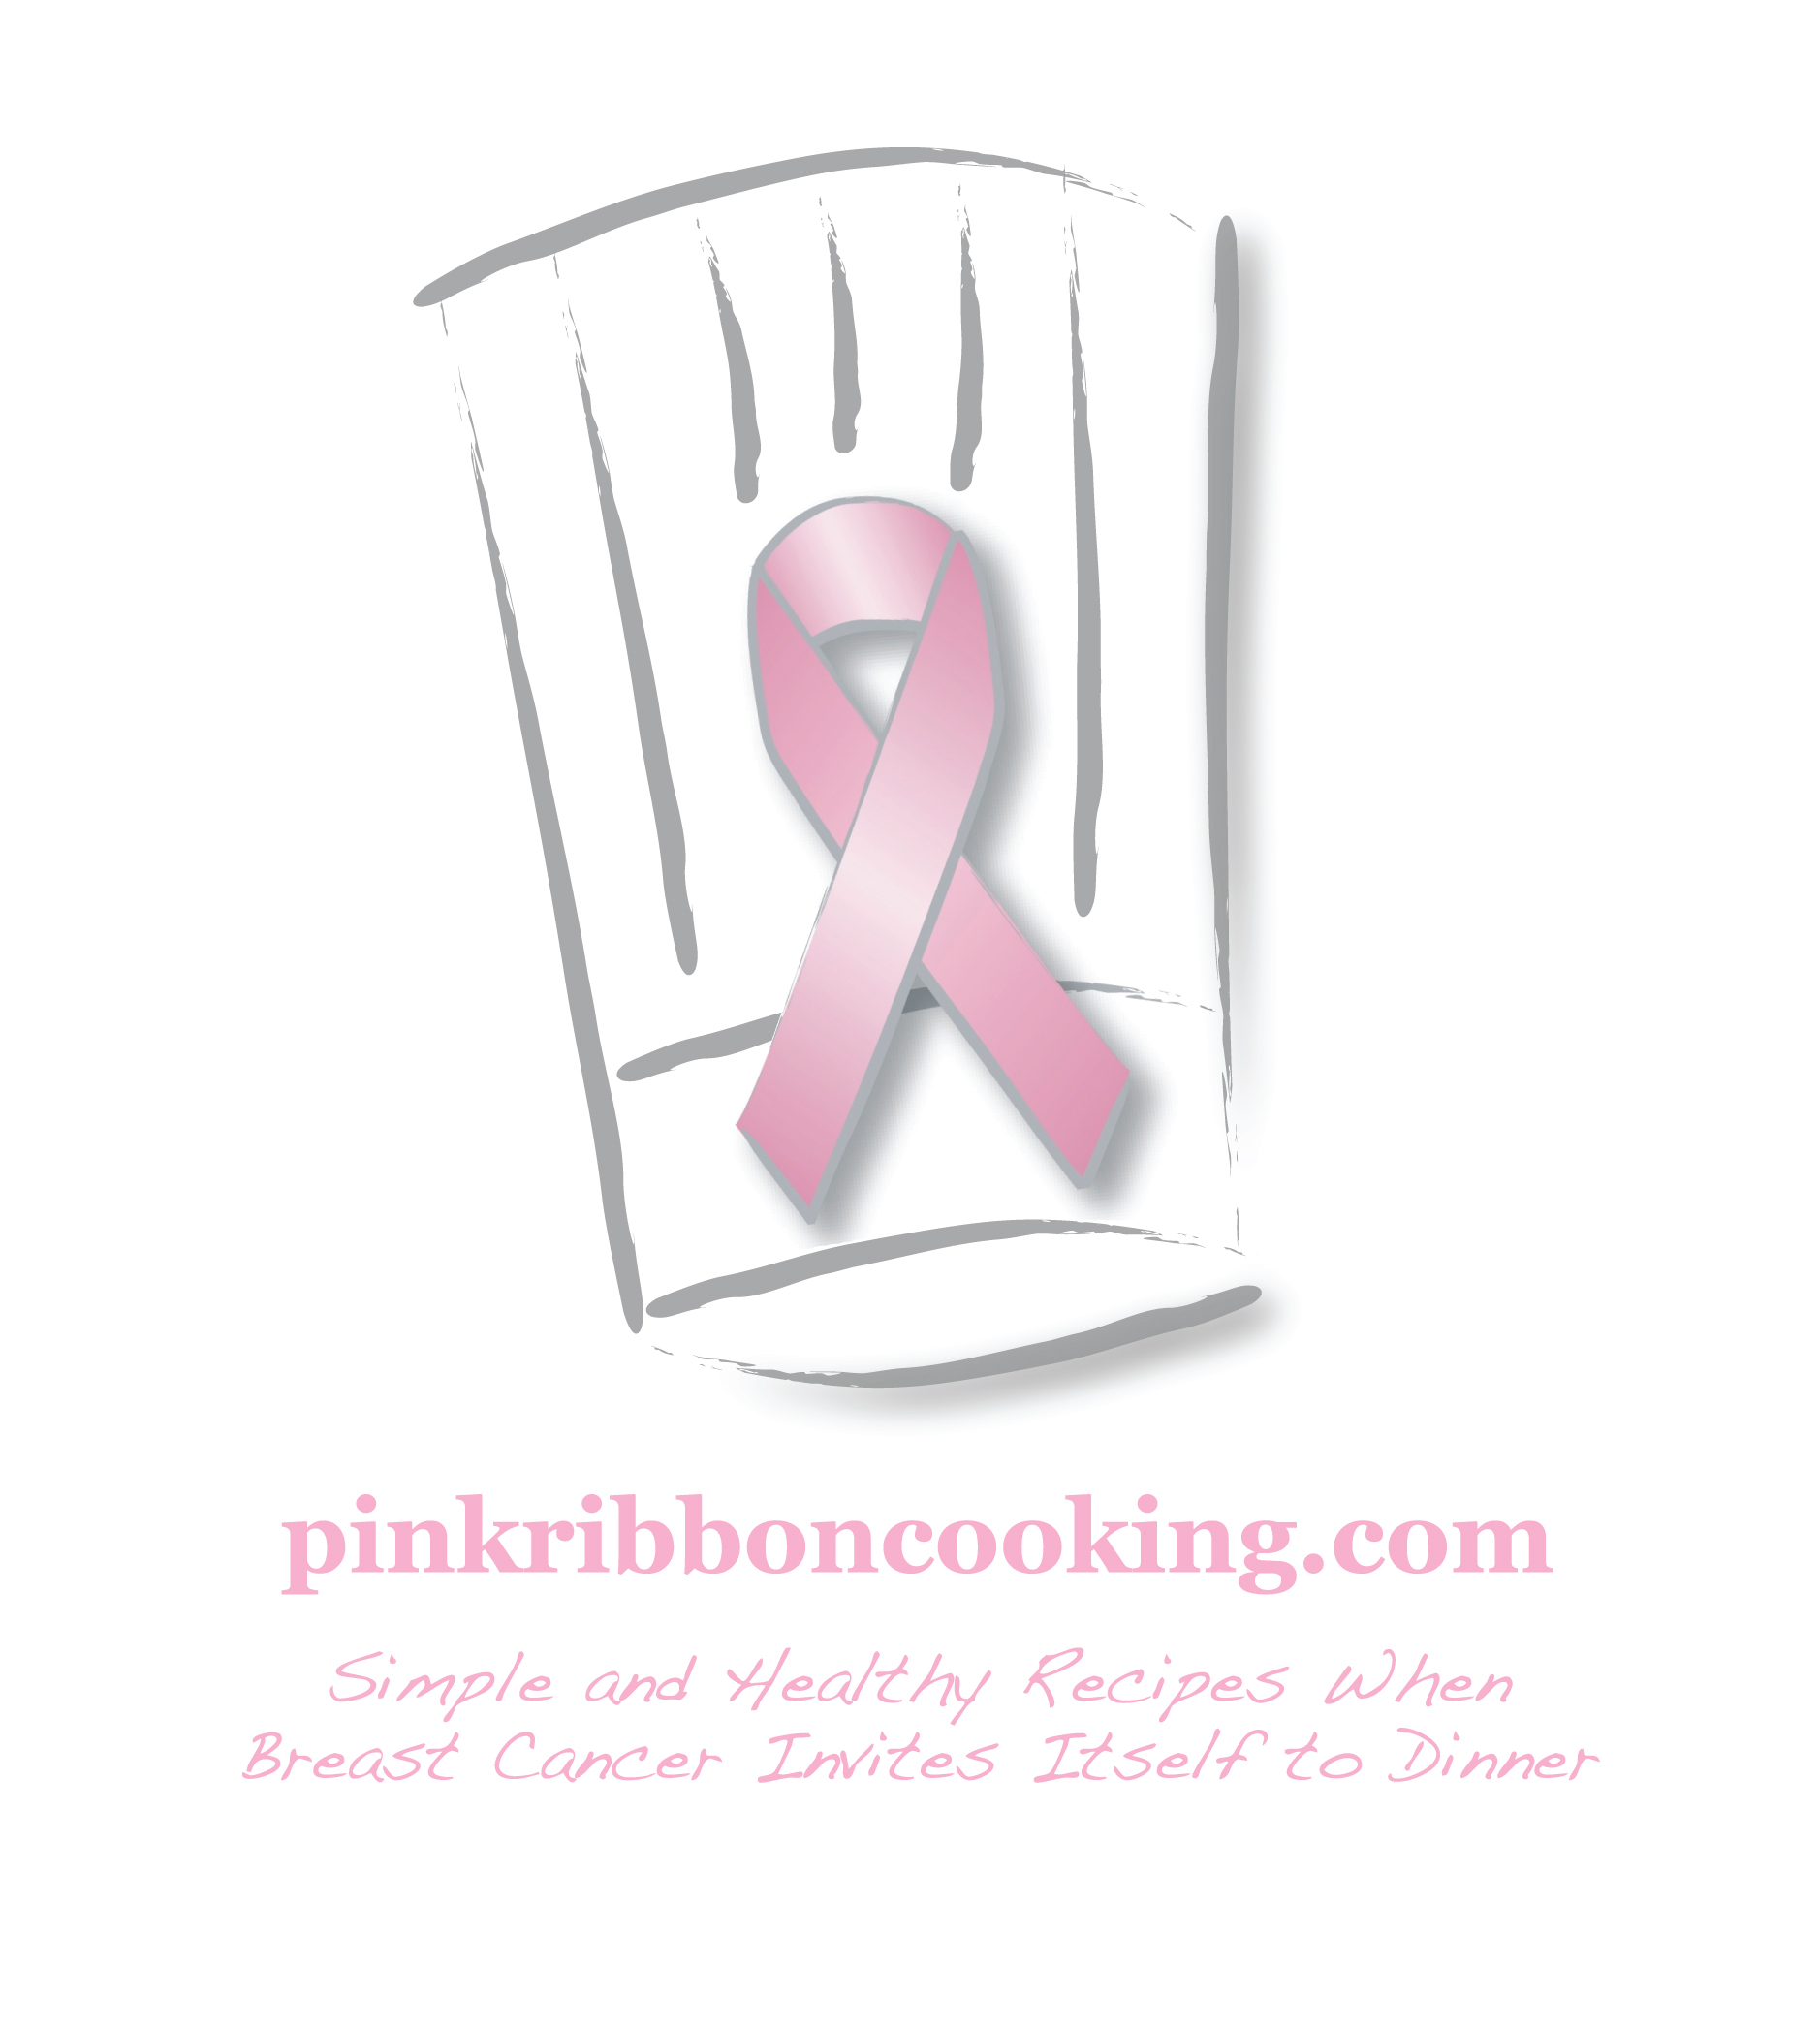 Pink_Ribbon_Cooking_Recipes_For_Breast_Cancer_Patients.jpg